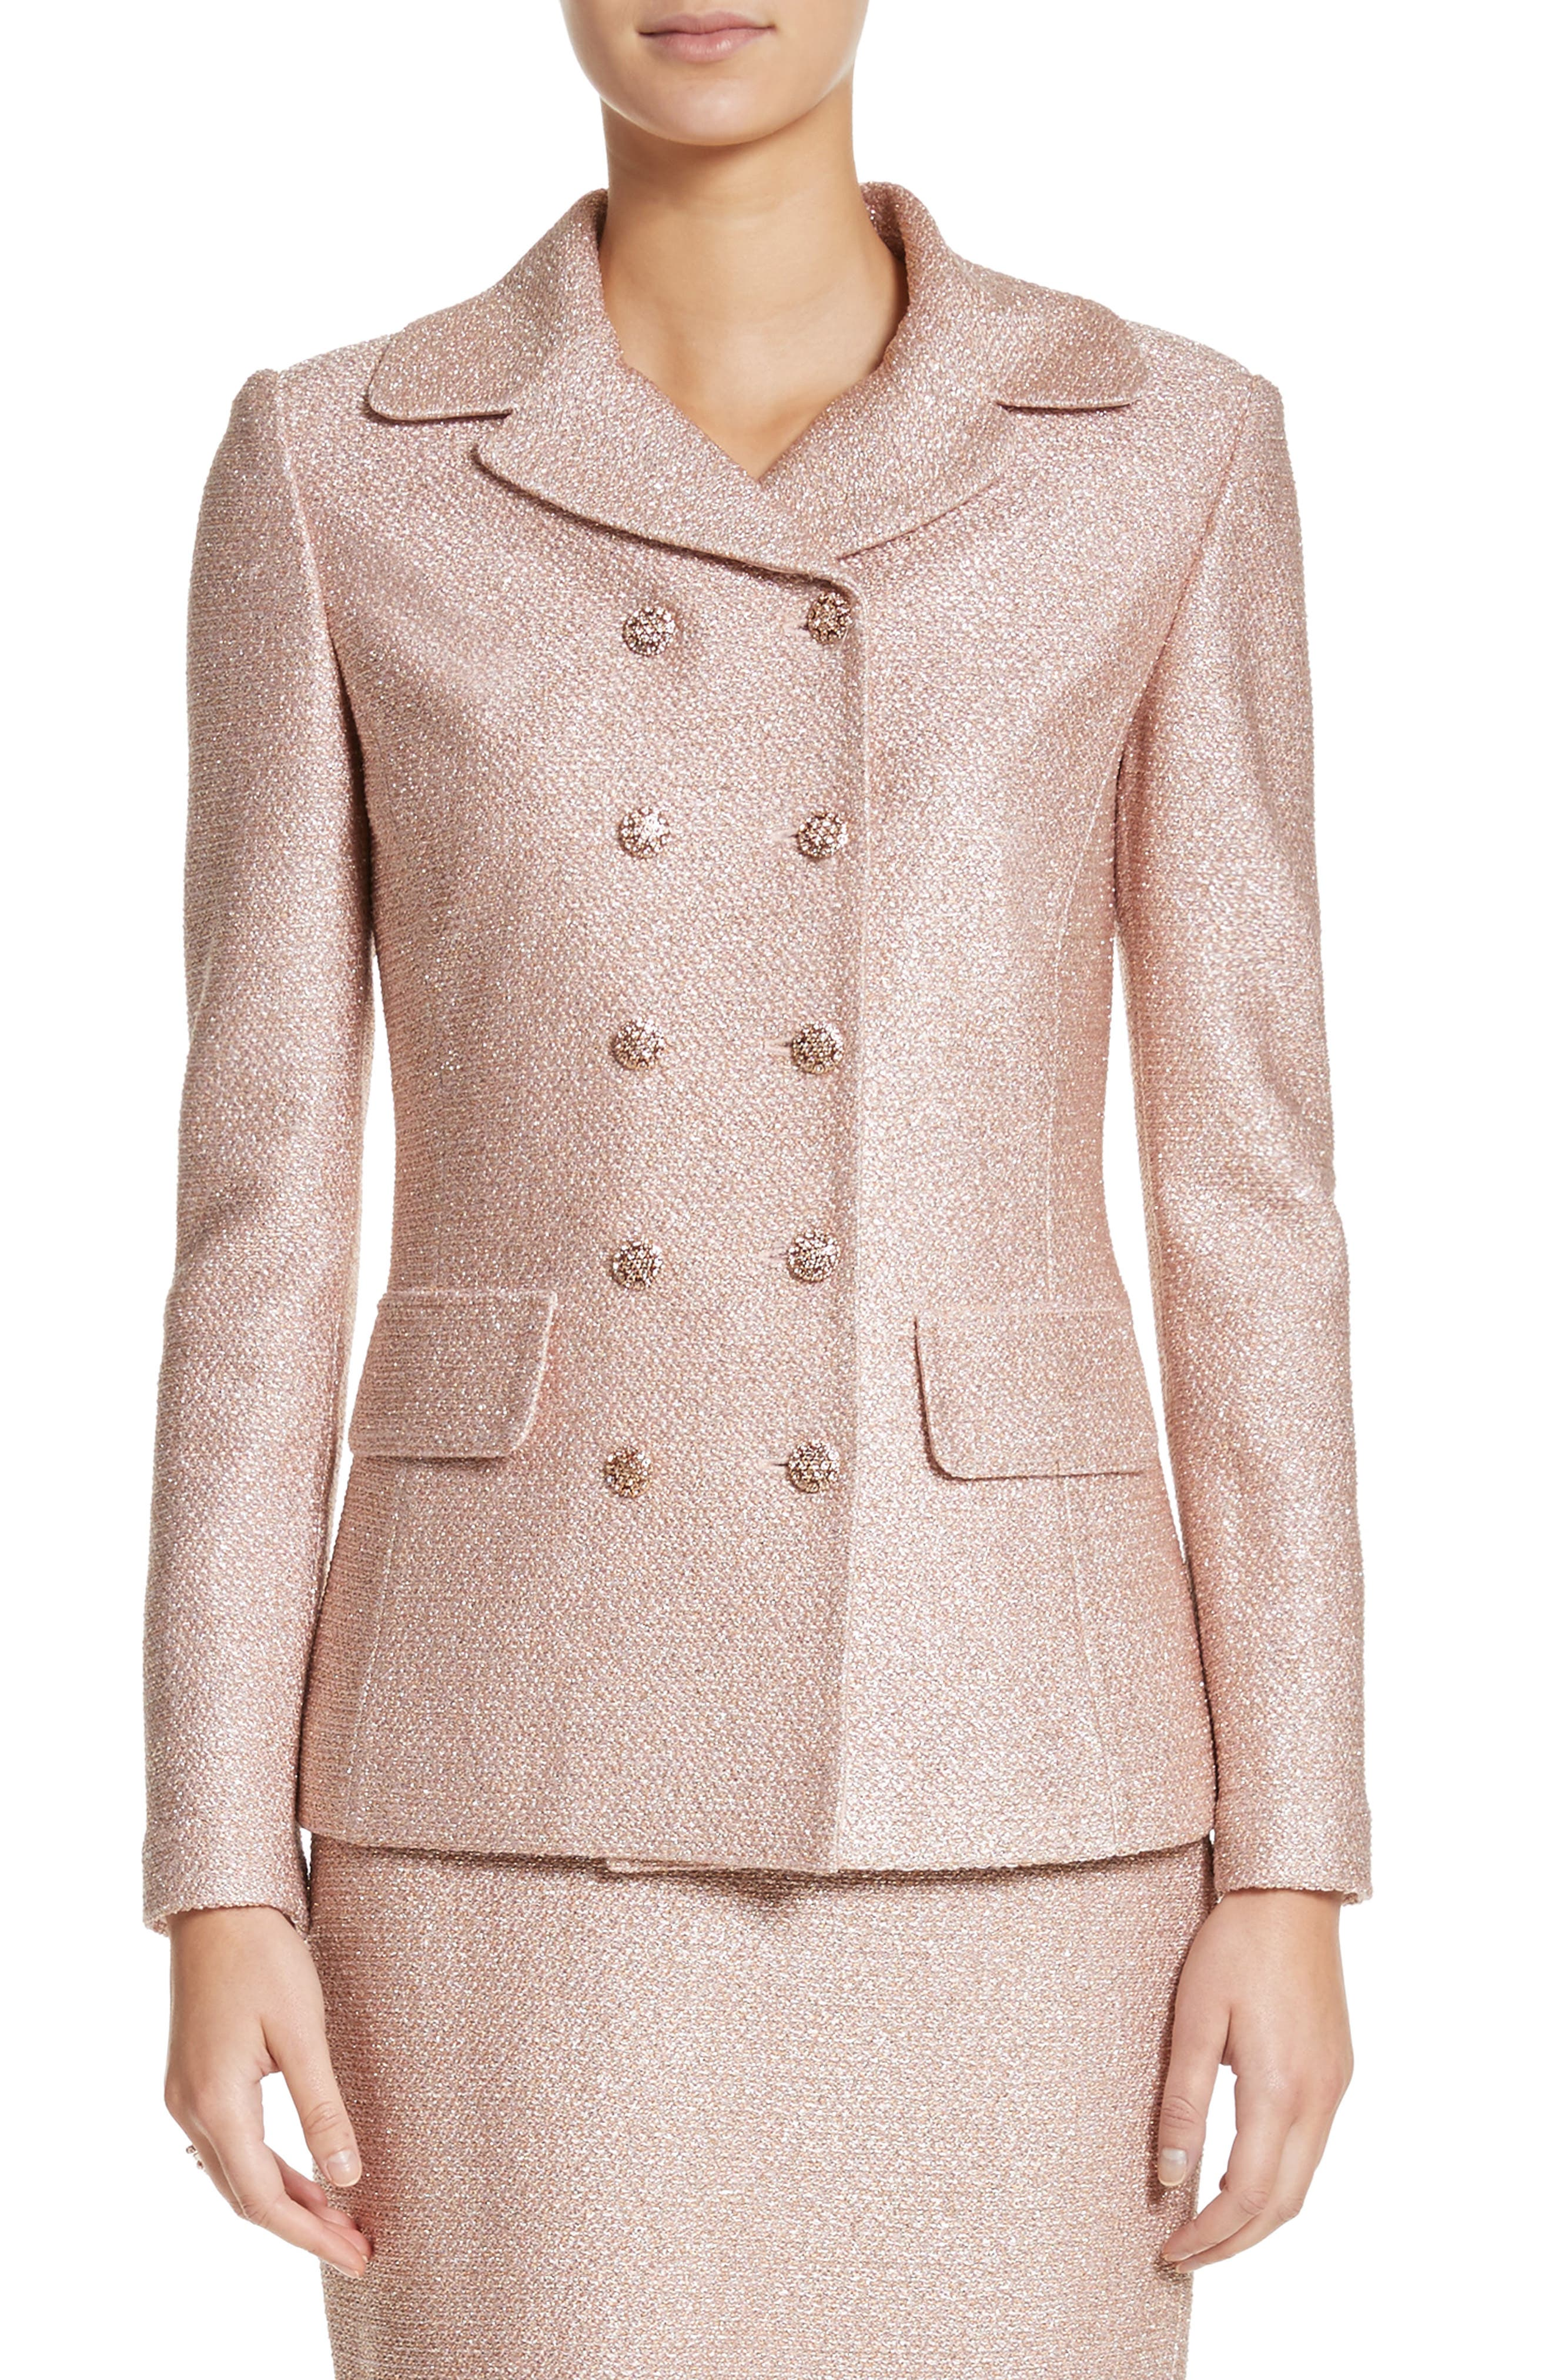 Double Breasted Frosted Metallic Knit Jacket,                             Main thumbnail 1, color,                             660